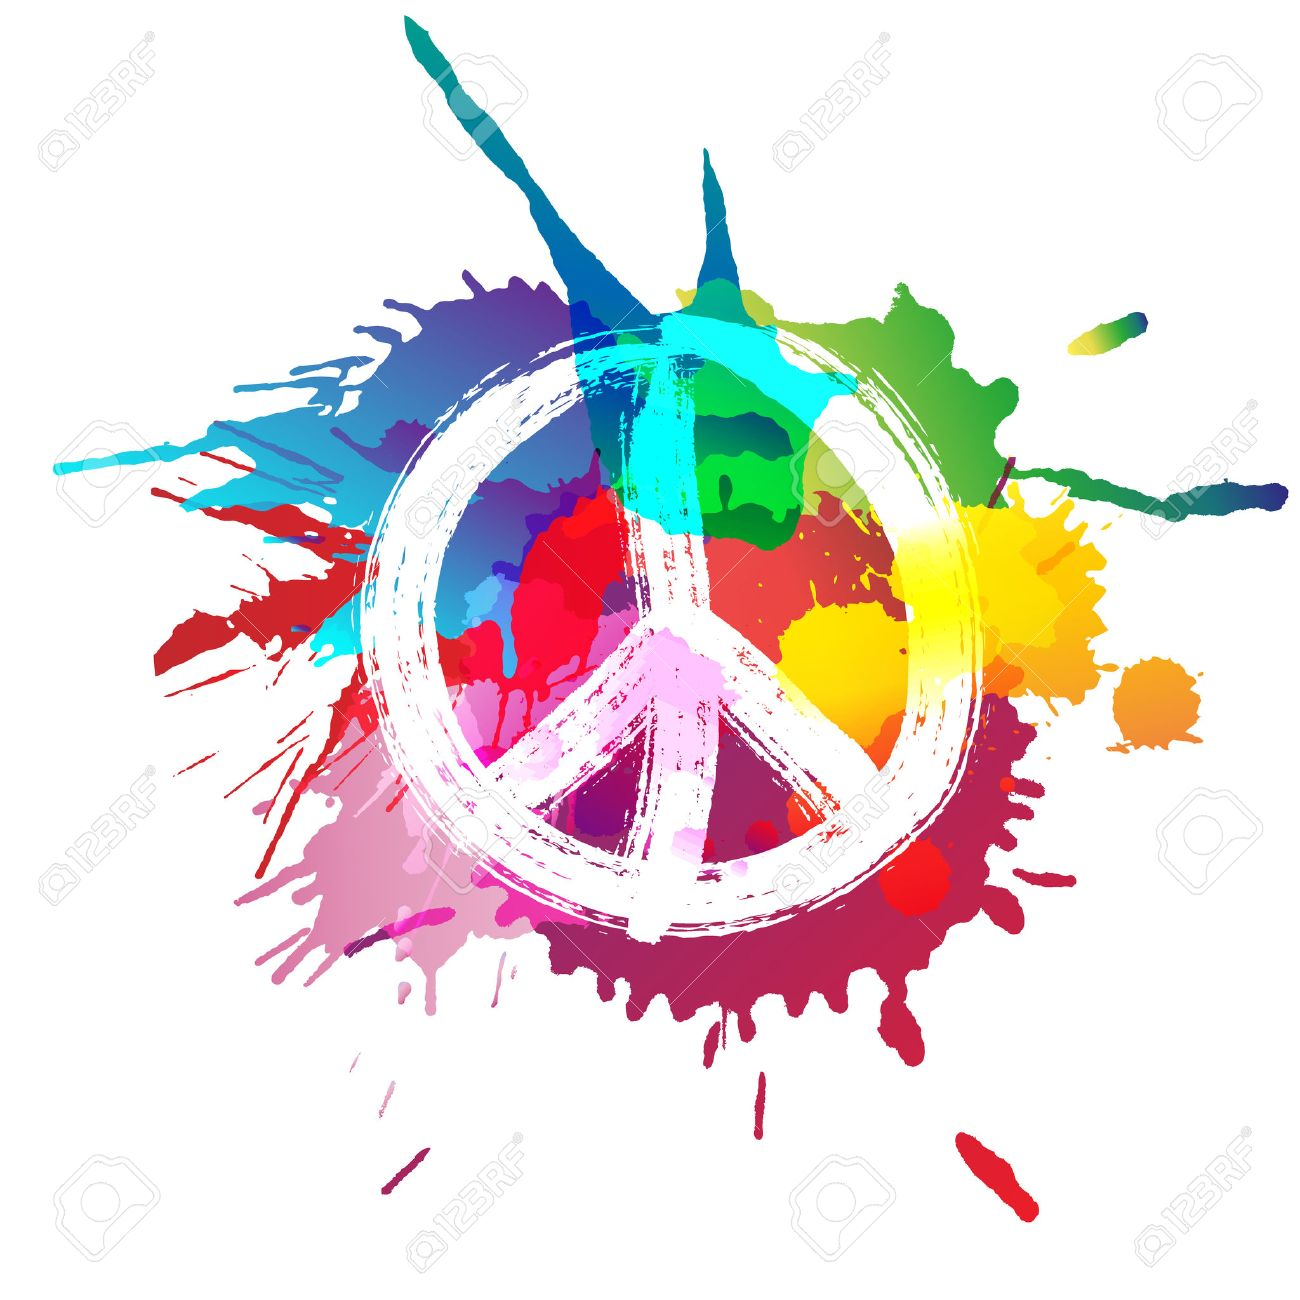 Peace sign in front of colorful splashes - 50579925